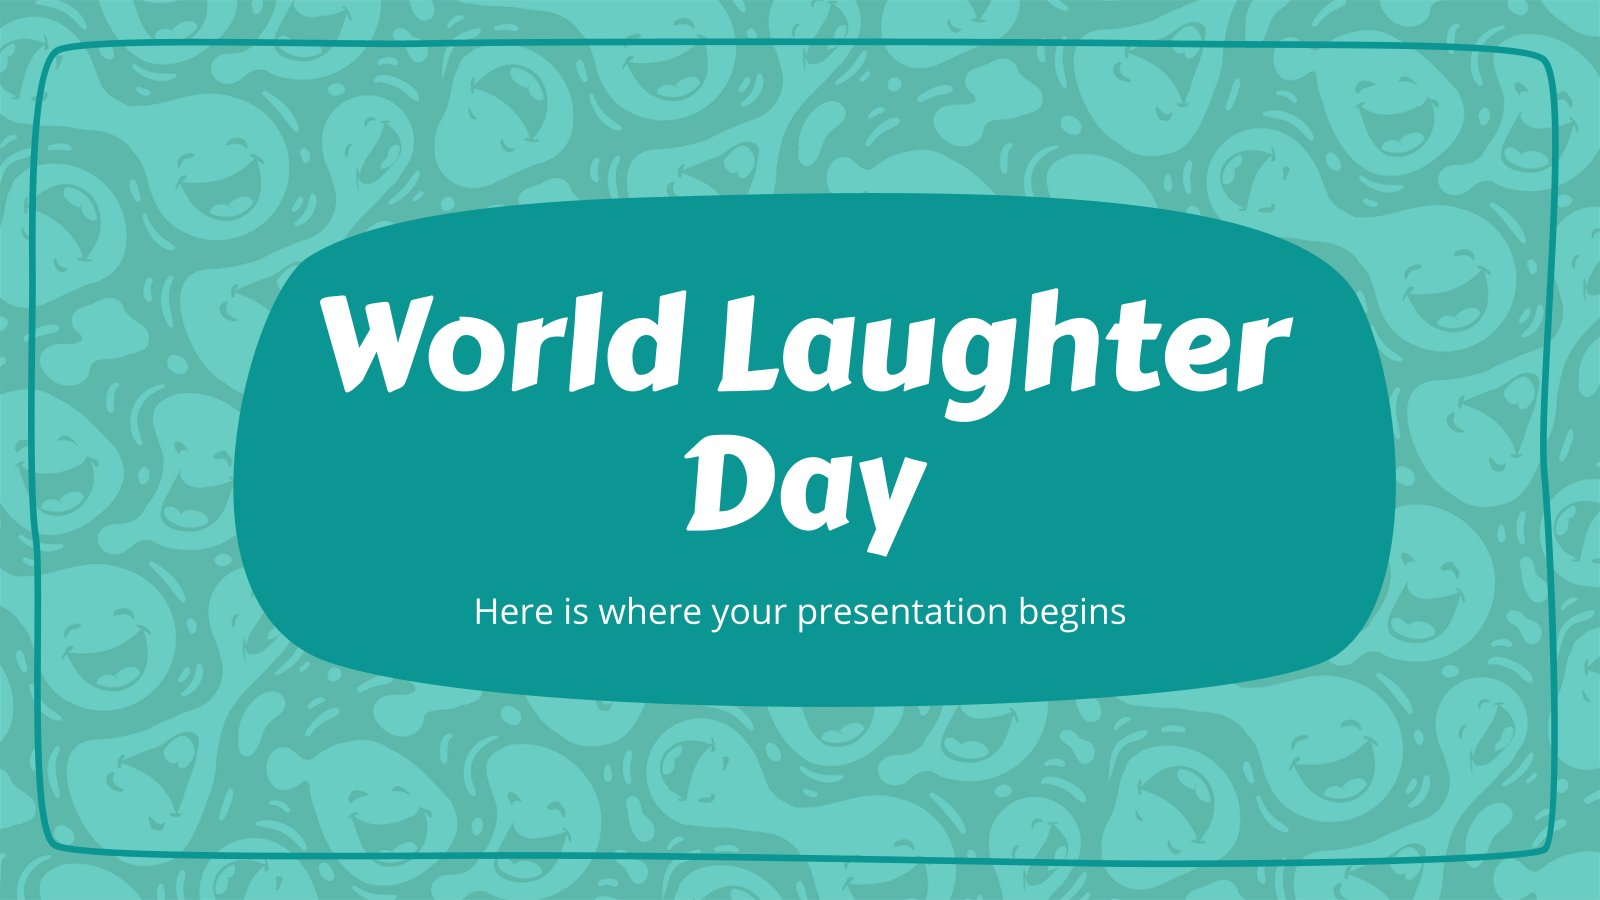 World Laughter Day presentation template